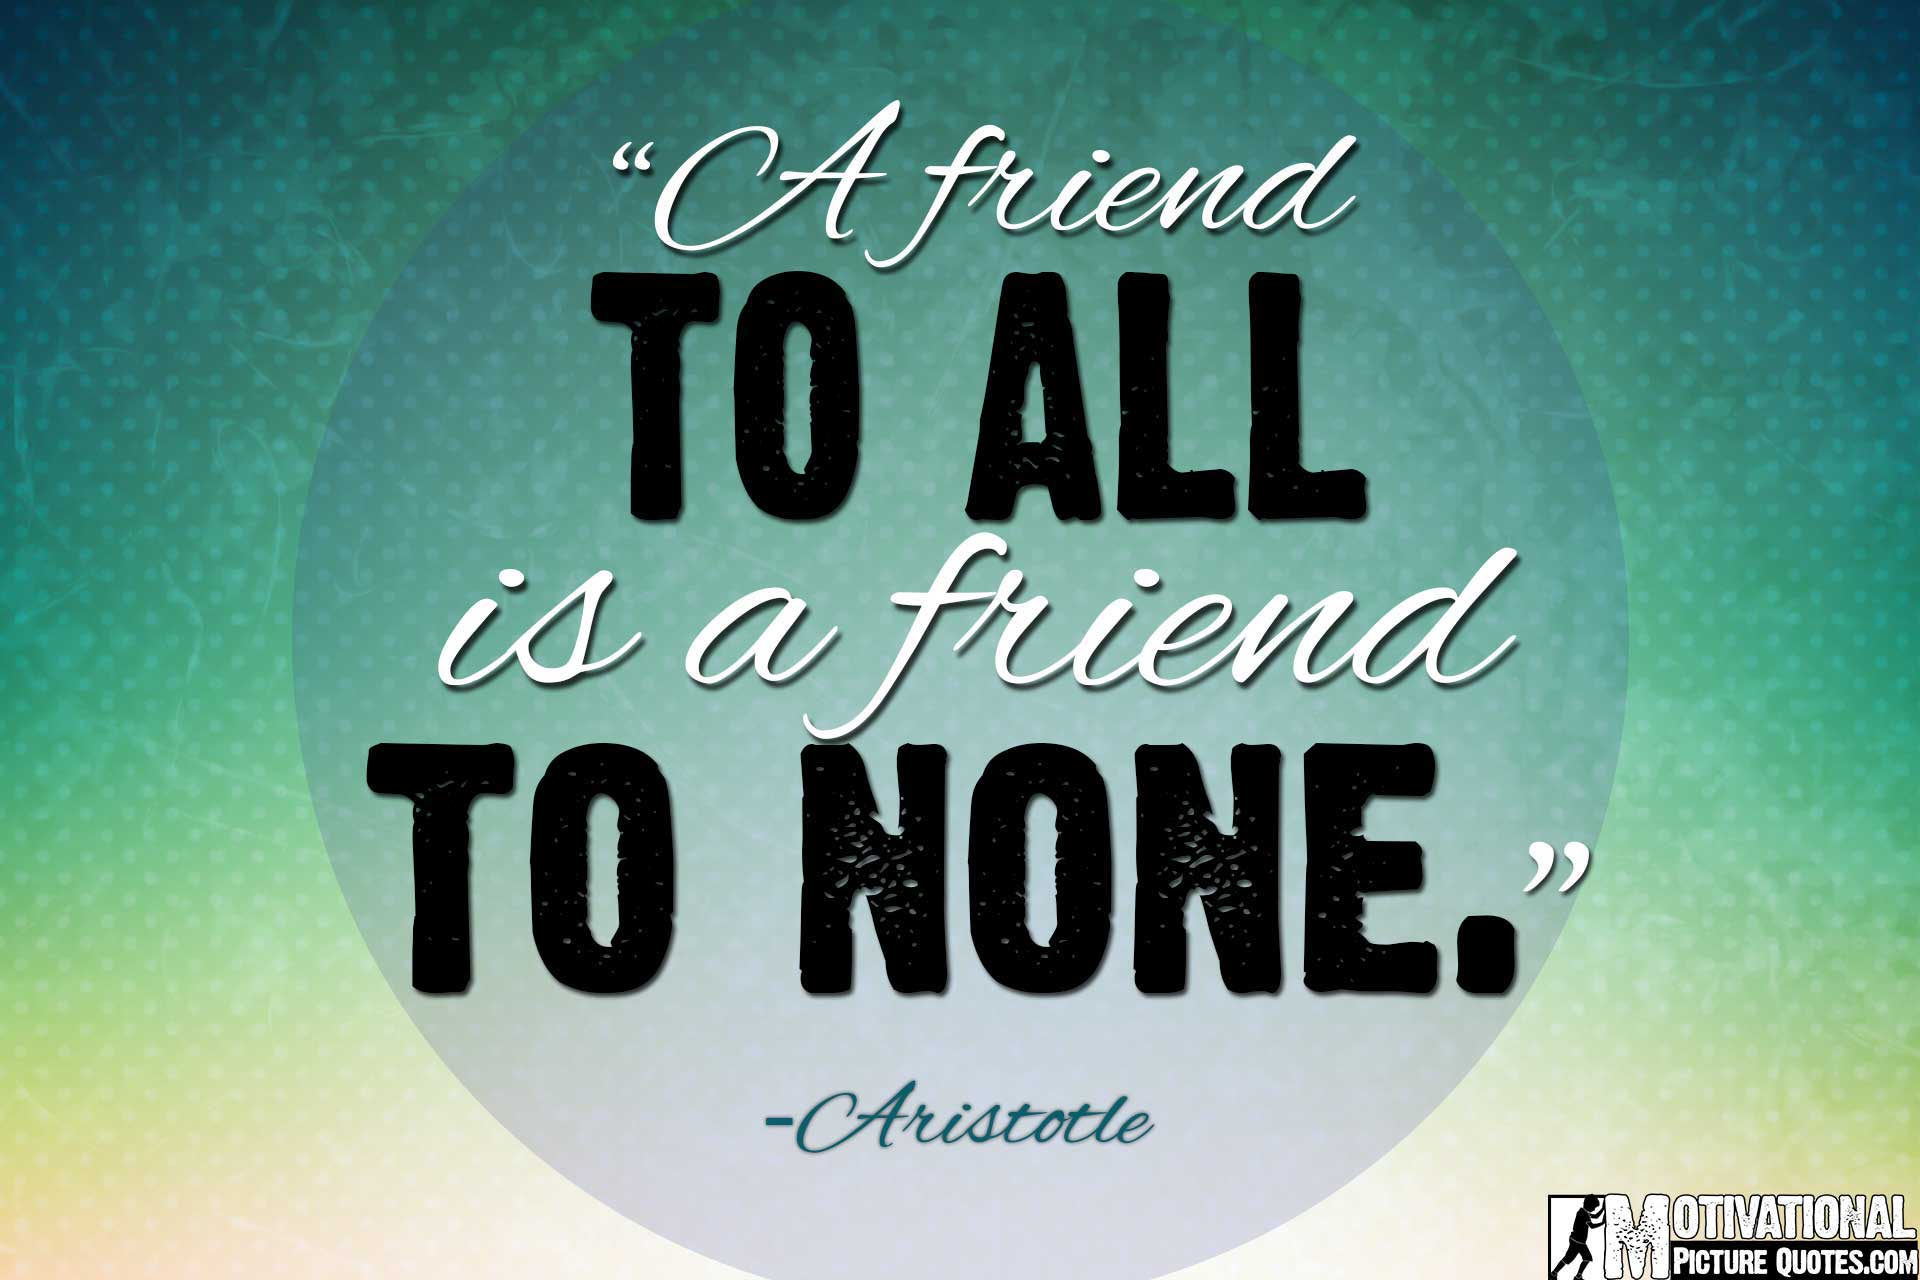 Quotes About Friendship With Images 25 Inspirational Friendship Quotes Images  Free Download